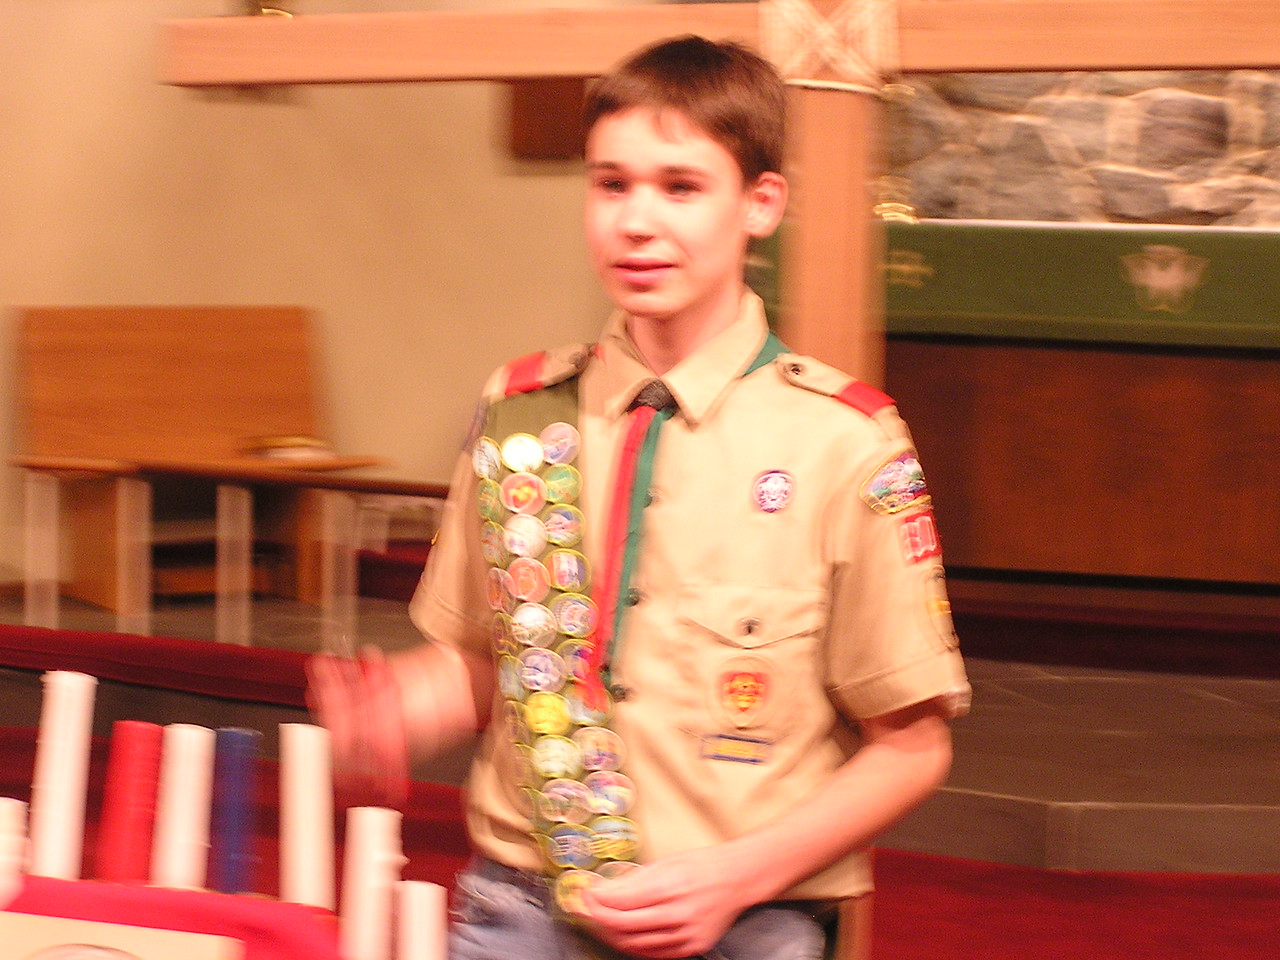 03-09-08 Kevin, Scouts 020